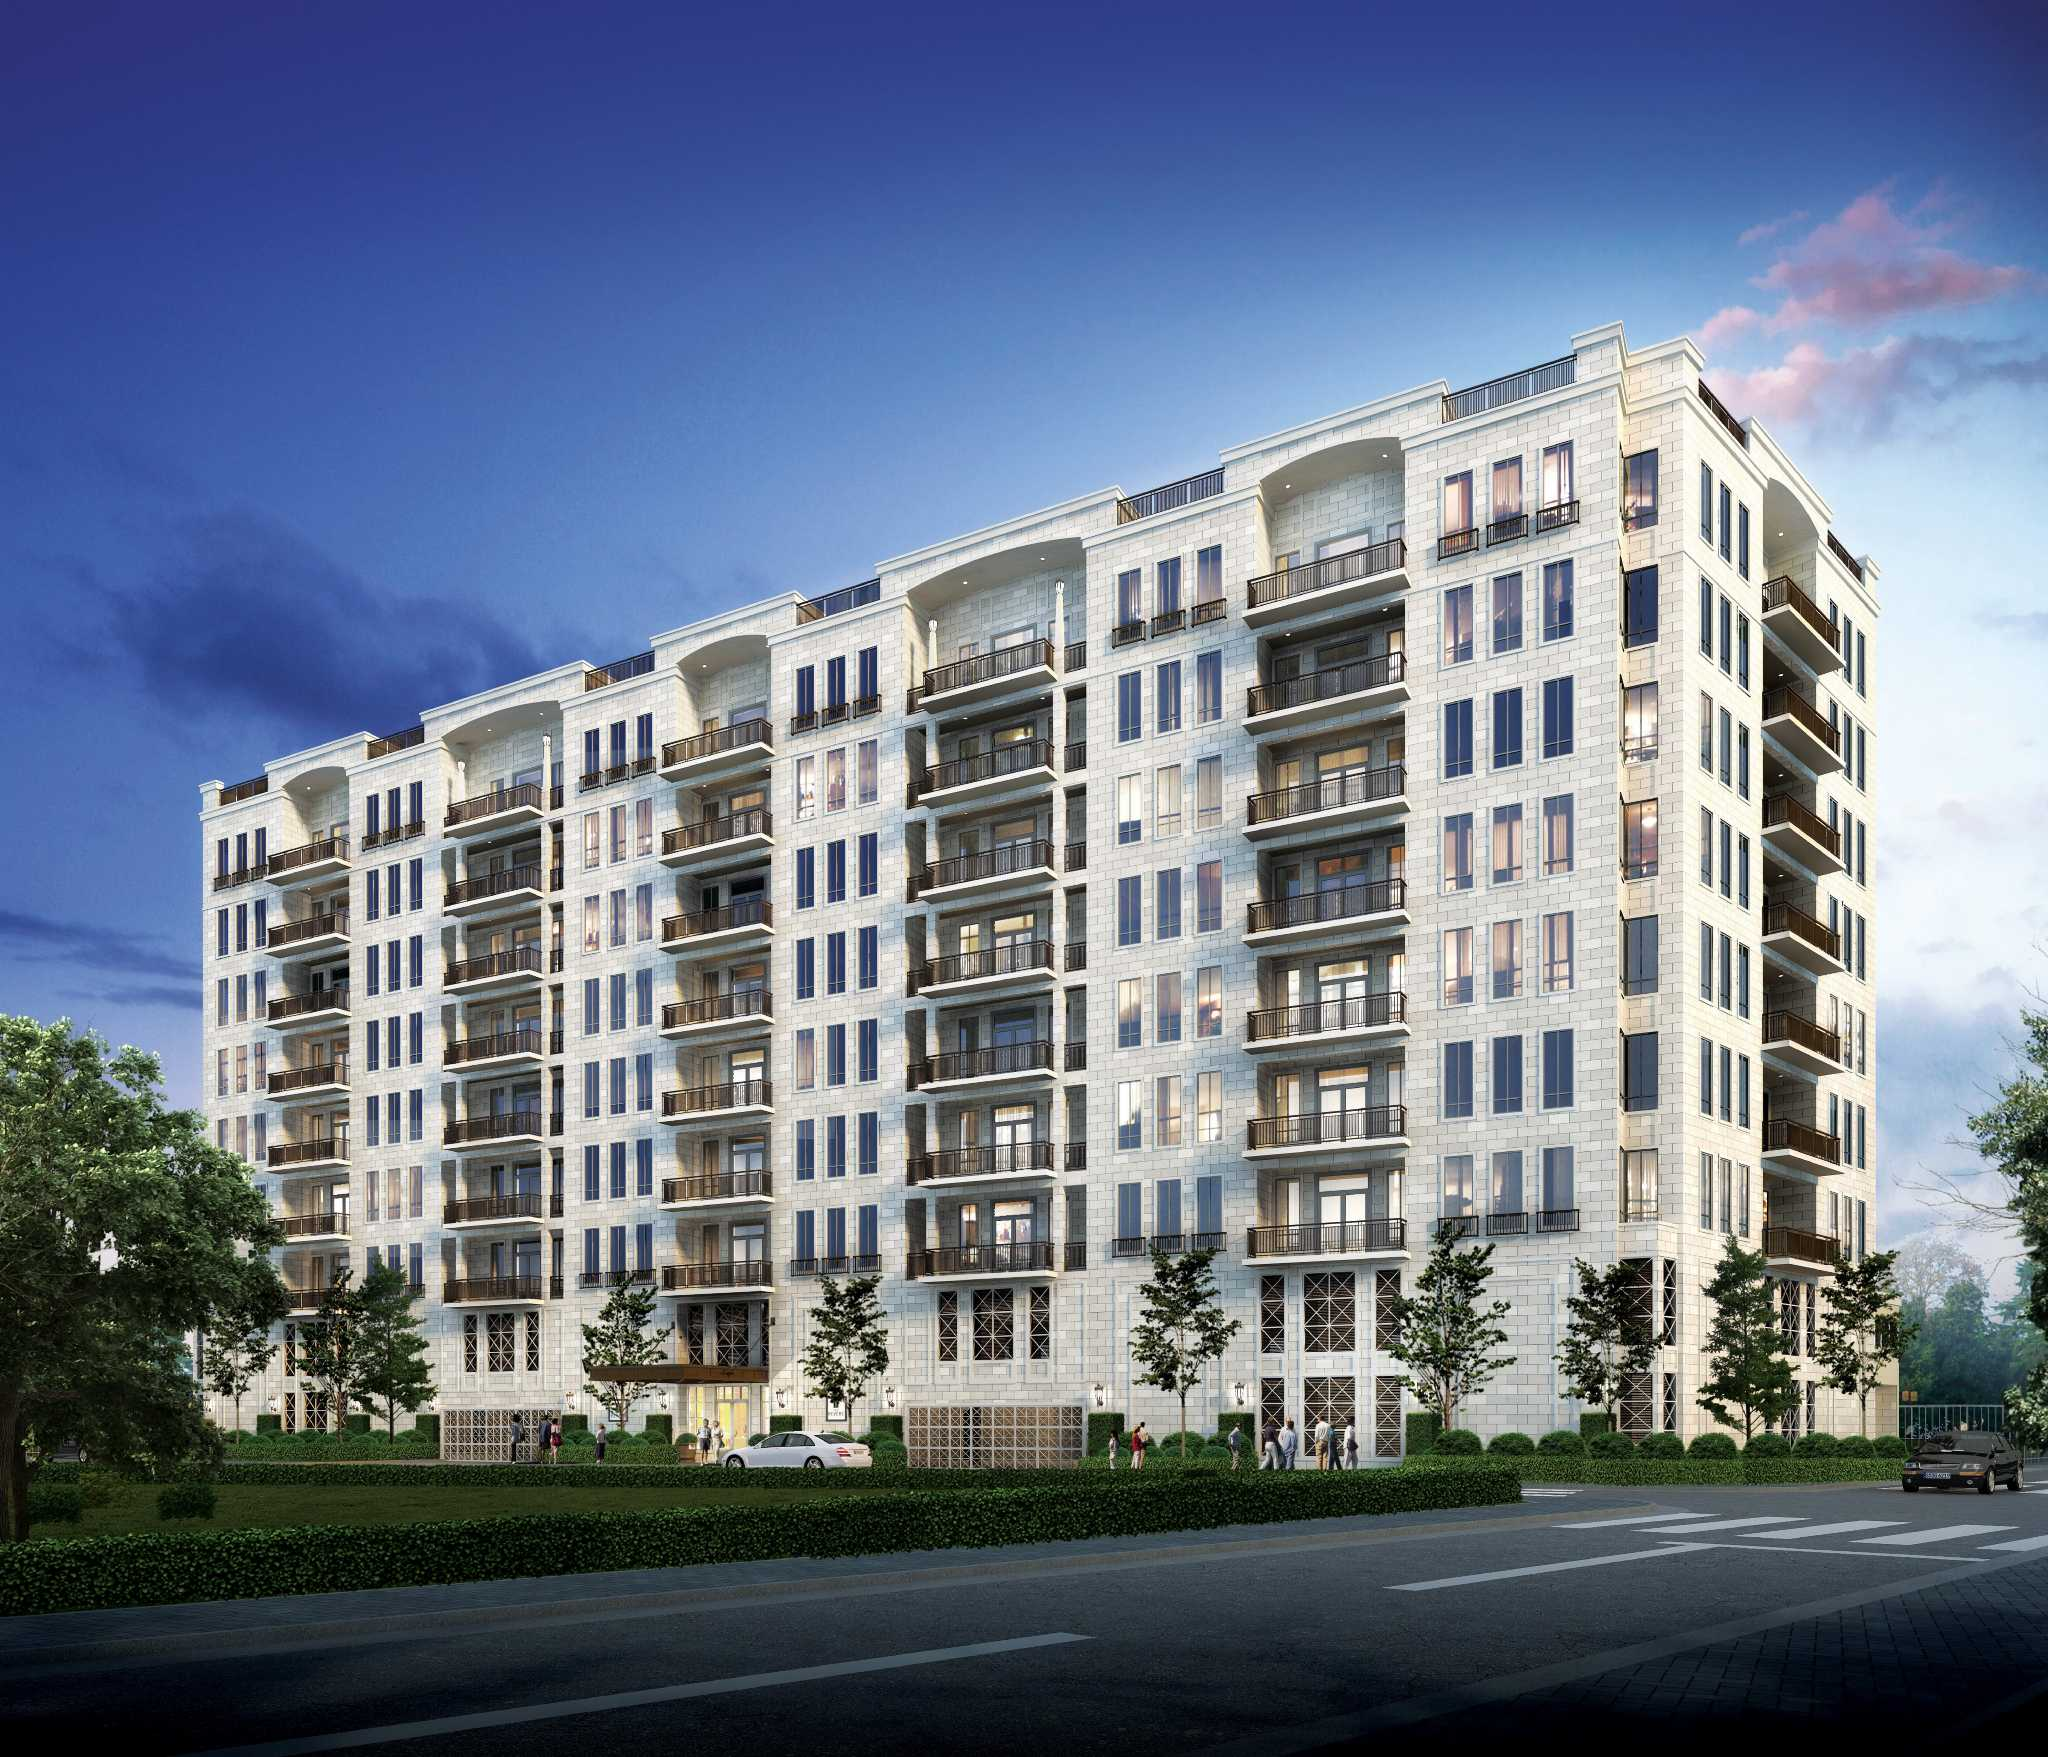 Large Luxury New Construction Homes: Pelican Builders Tests Market For New Luxury Condo